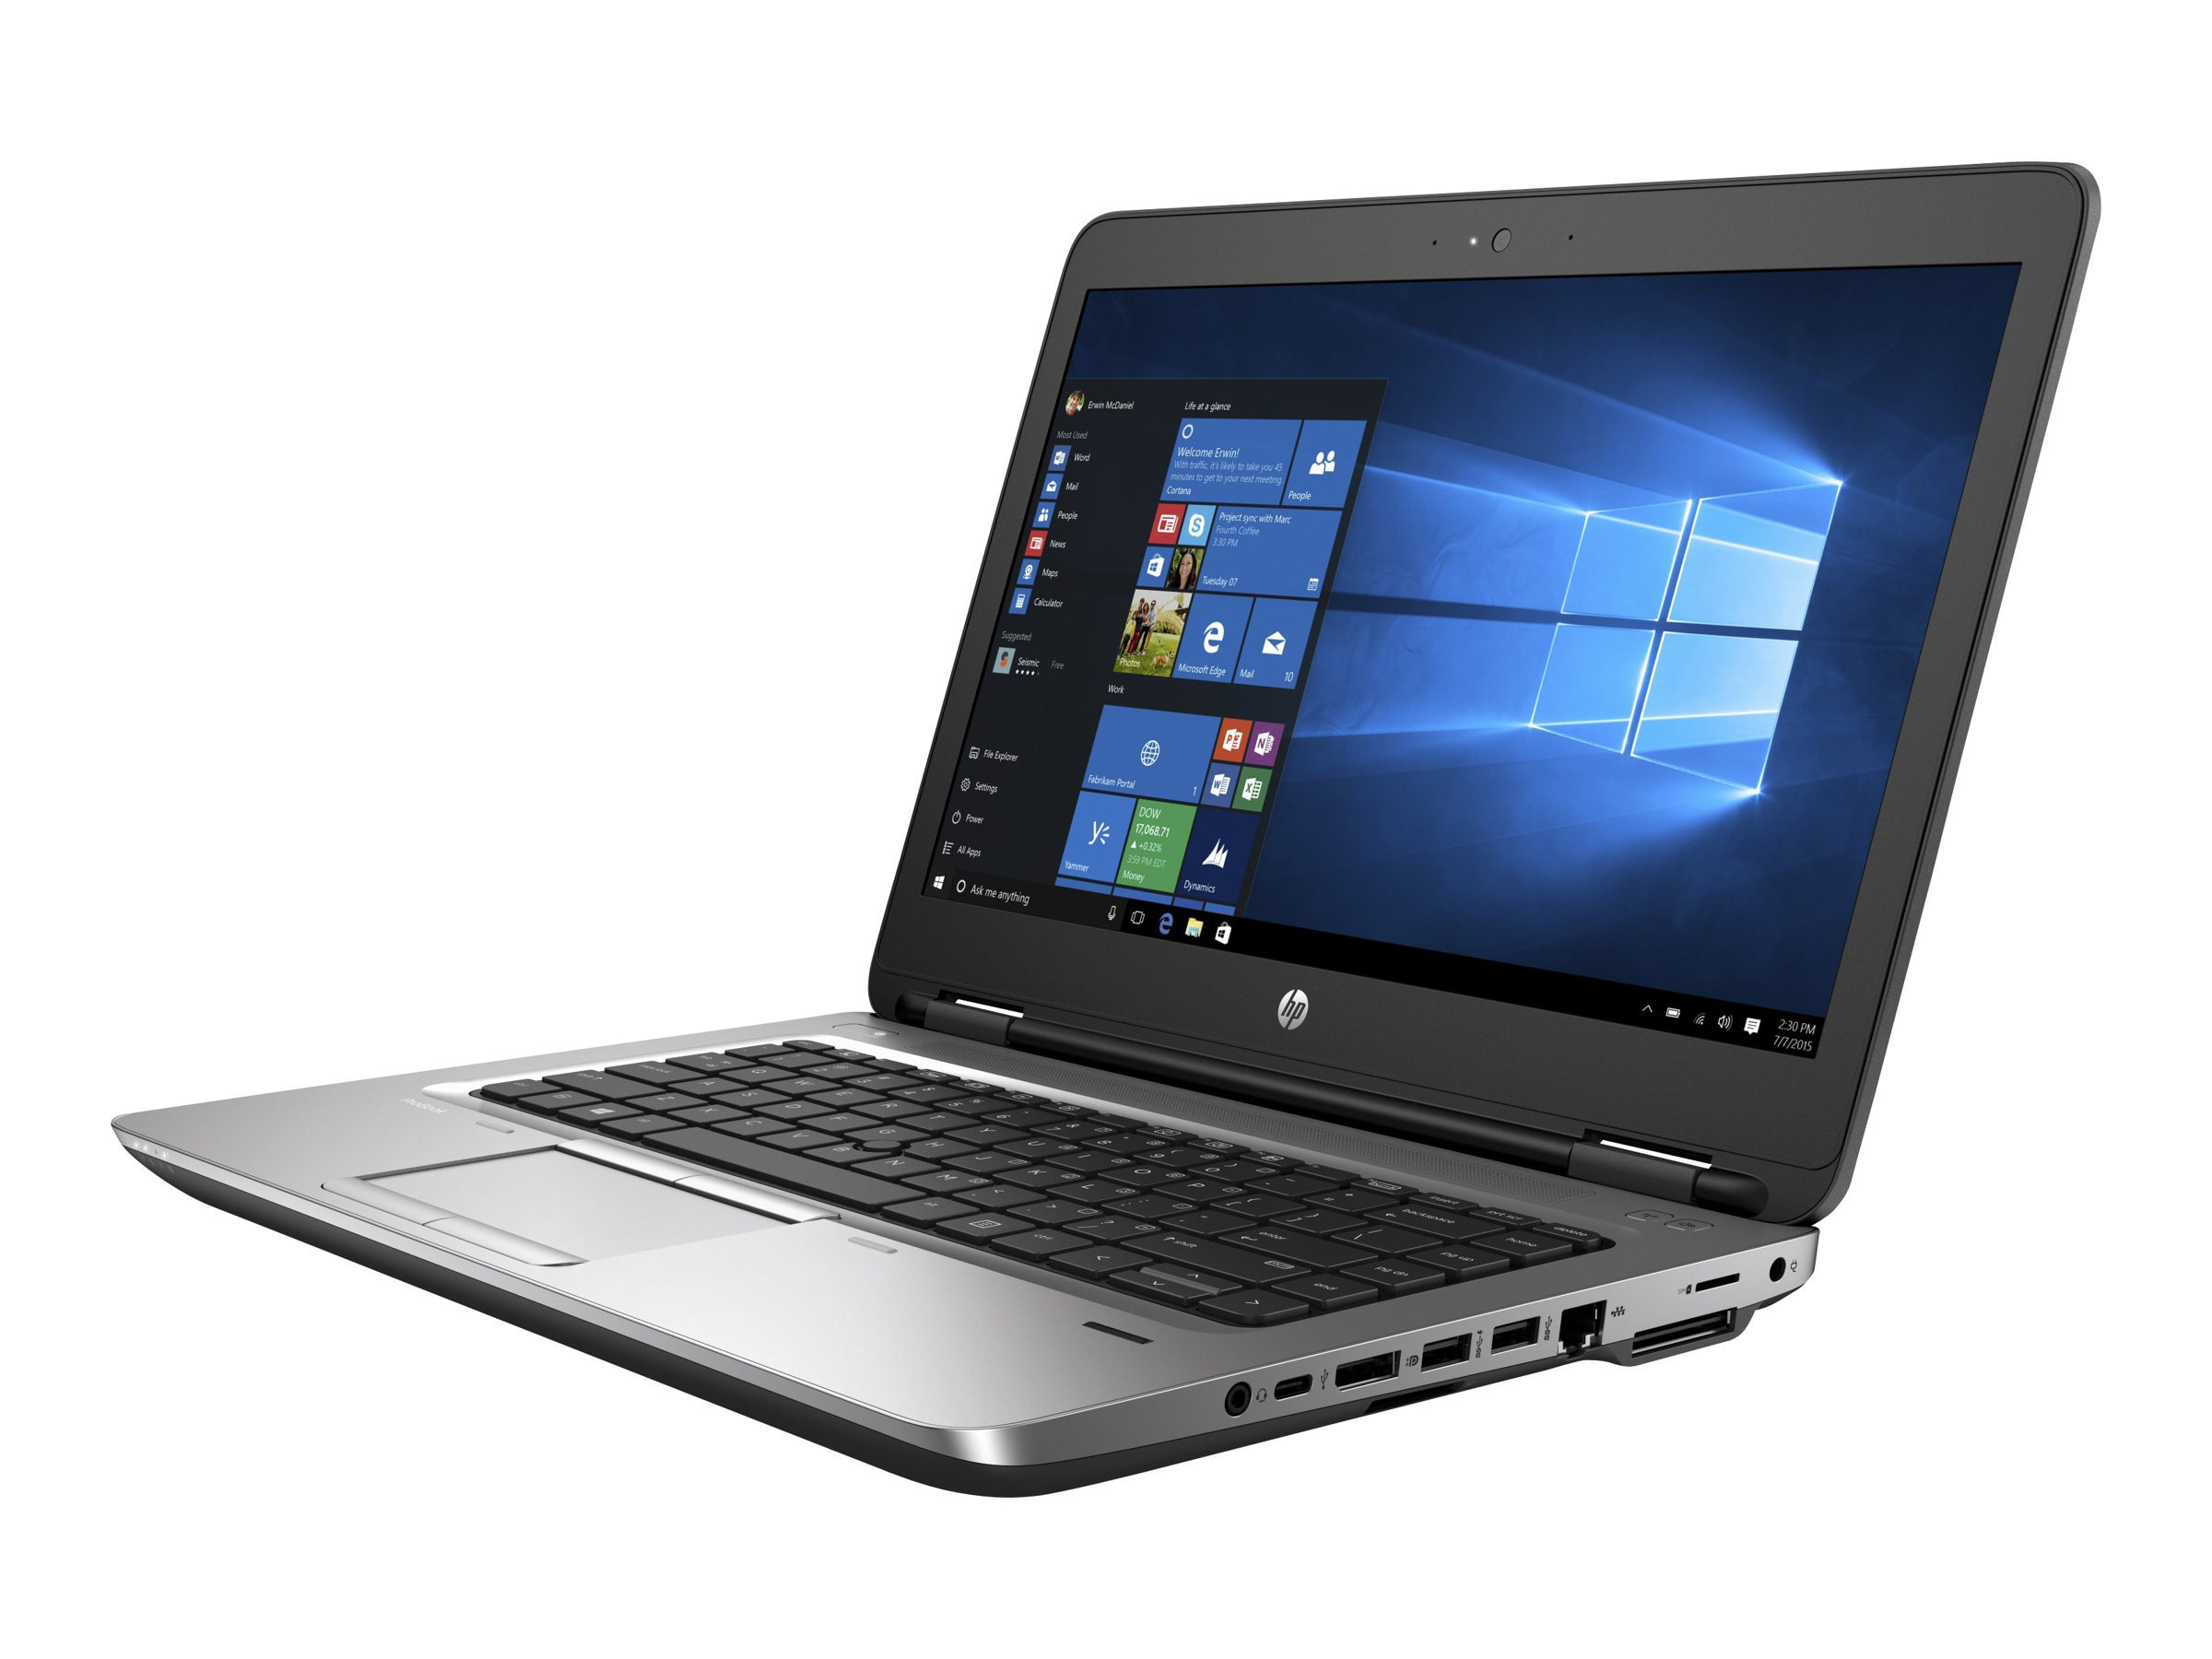 HP ProBook 640 G2 2.3GHz Core i5 14in display, W0S35UT#ABA